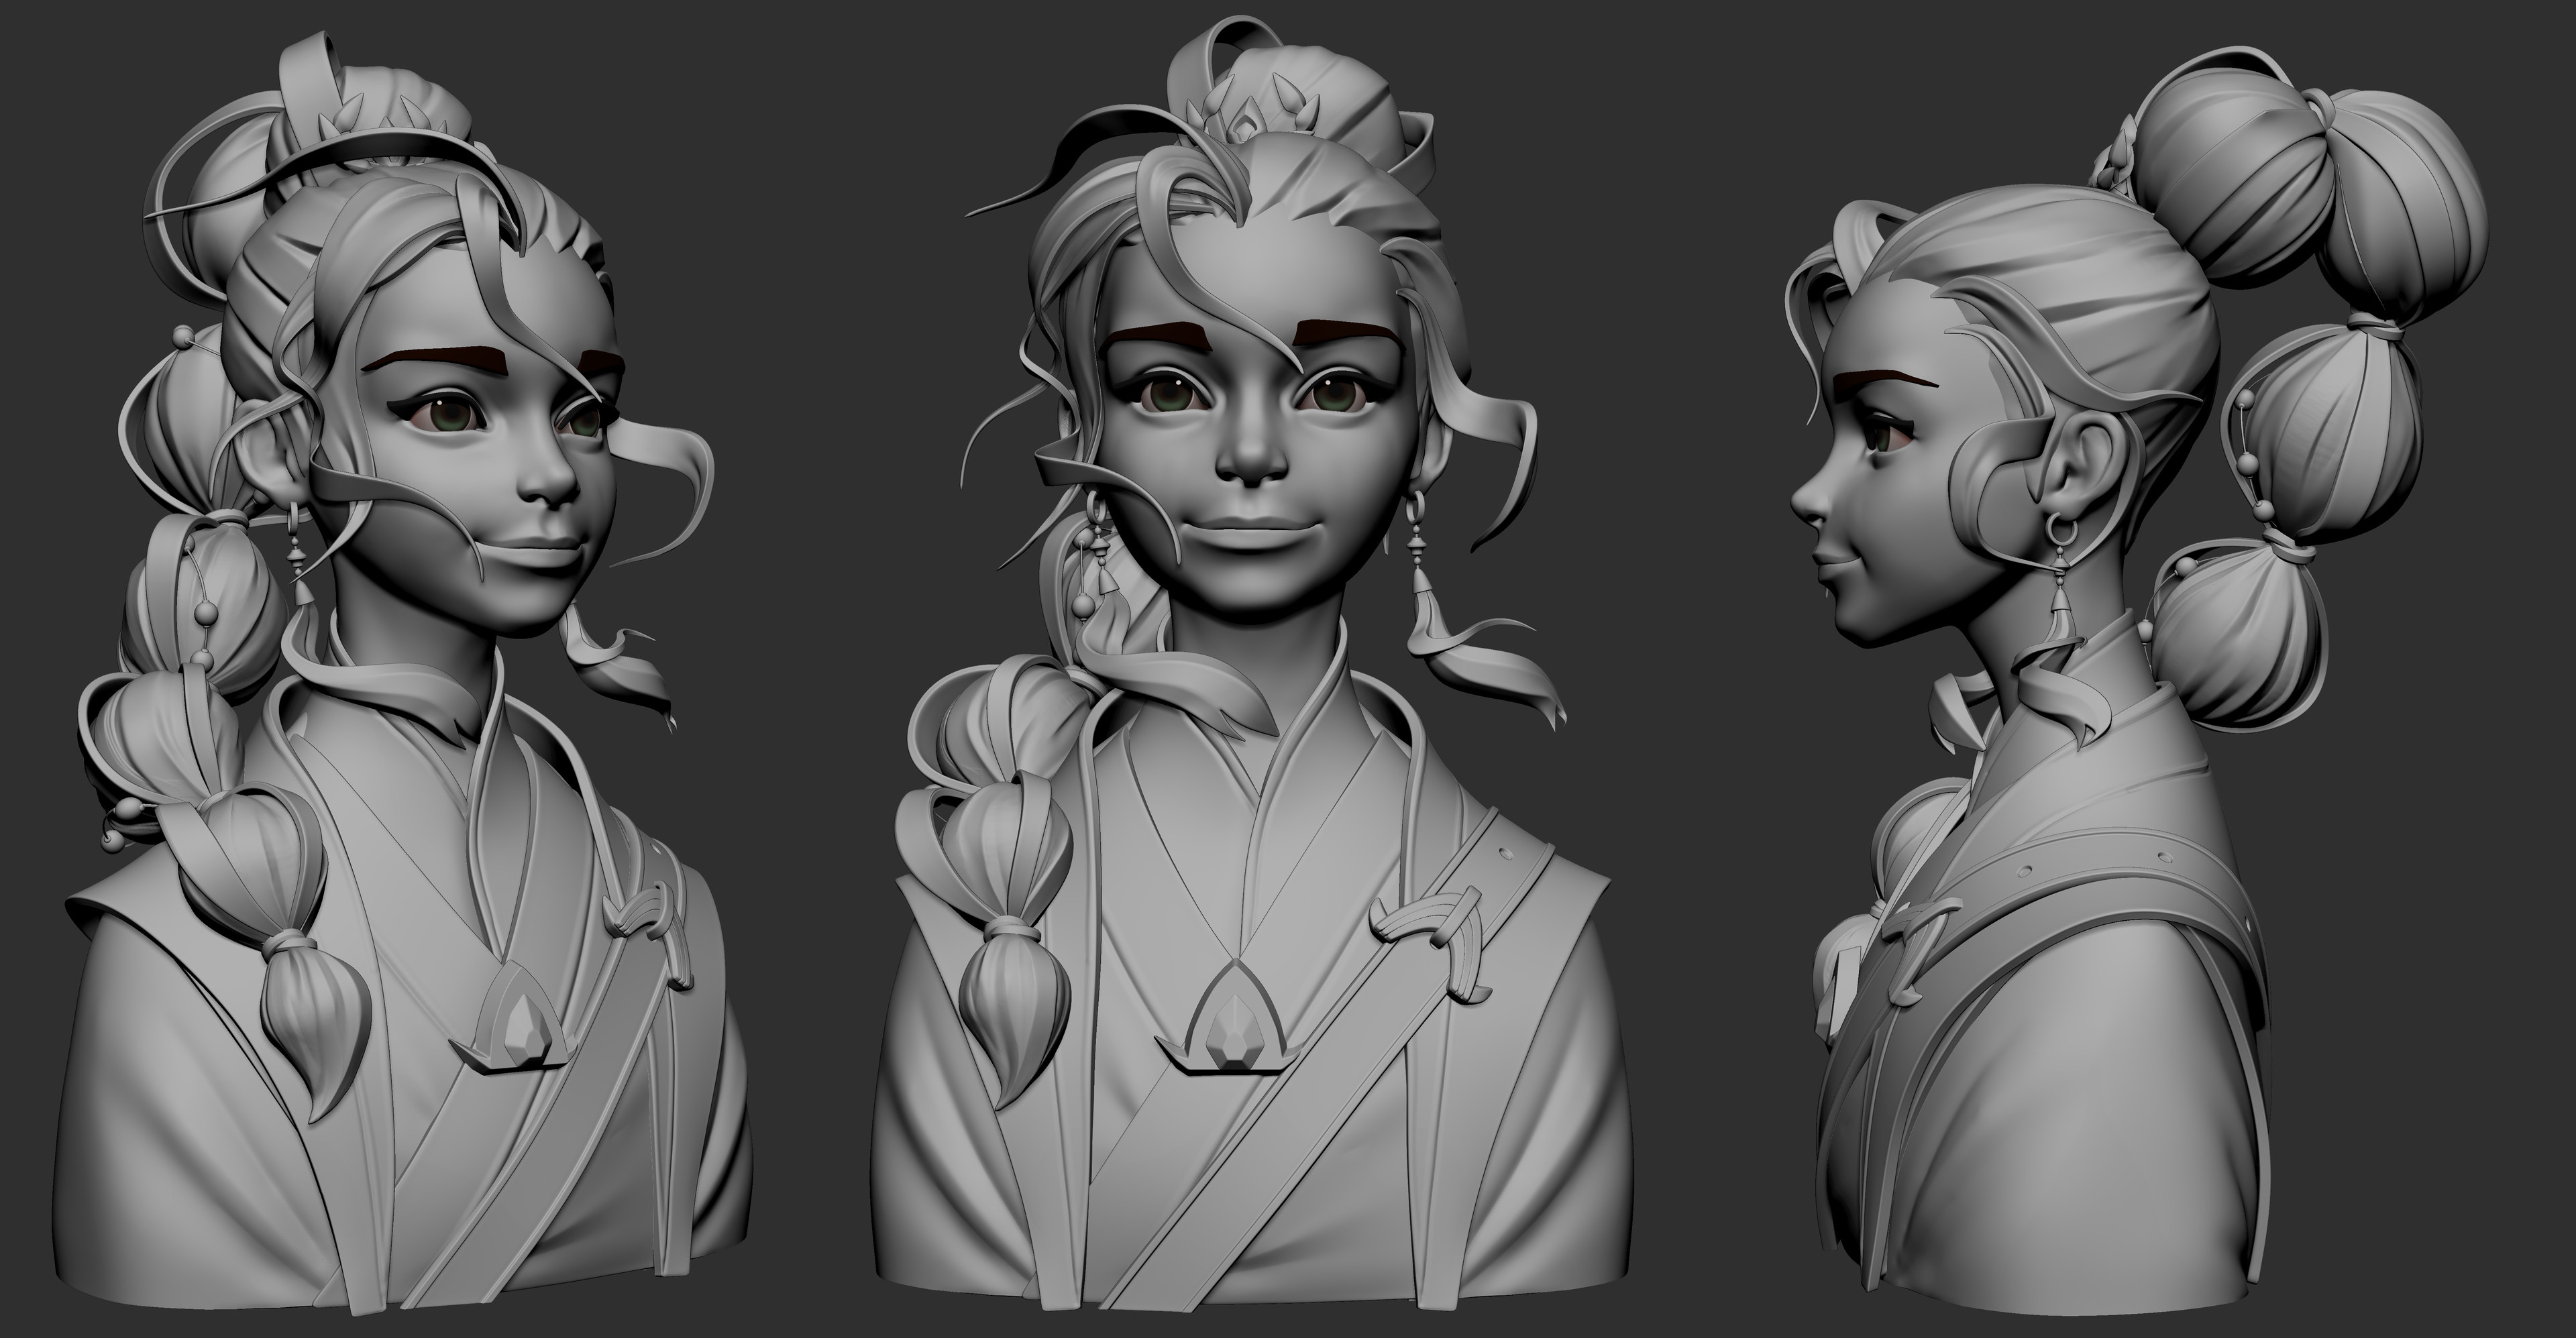 Screengrab from Zbrush using Undoz matcap